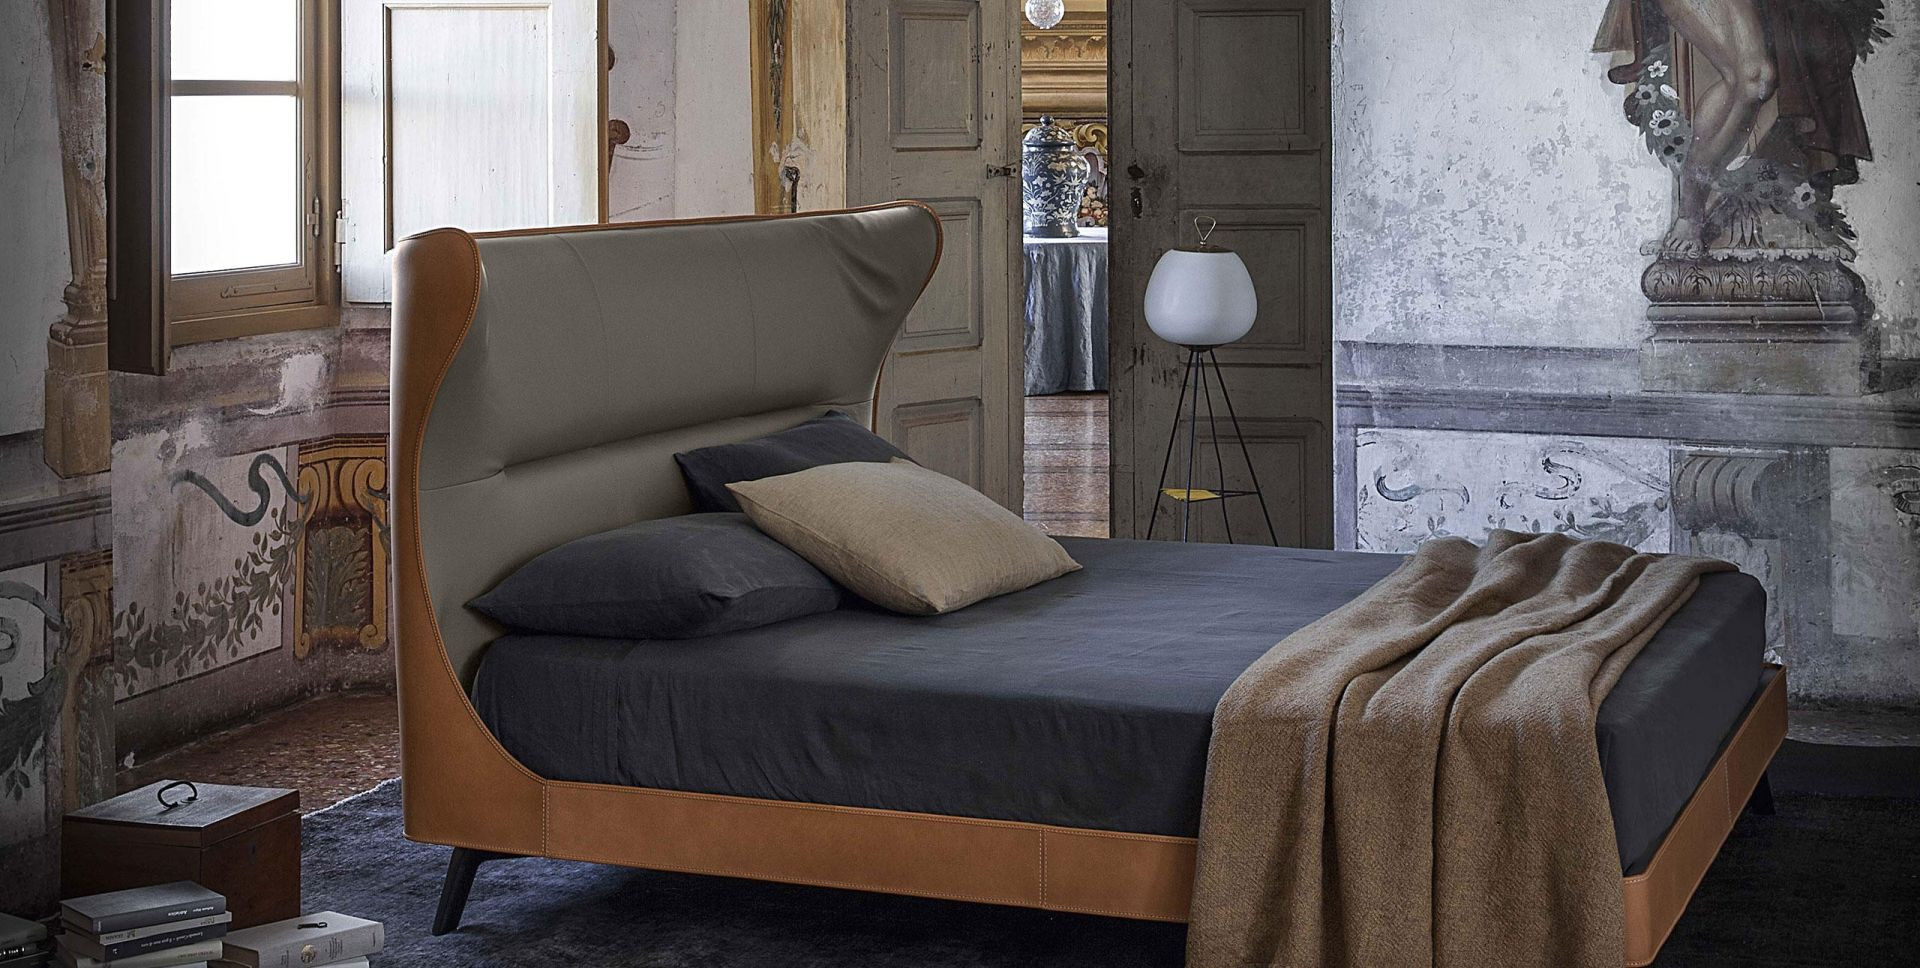 Poltrona Frau Mamy Blue Bed.Mamy Blue Bed Studio Italia